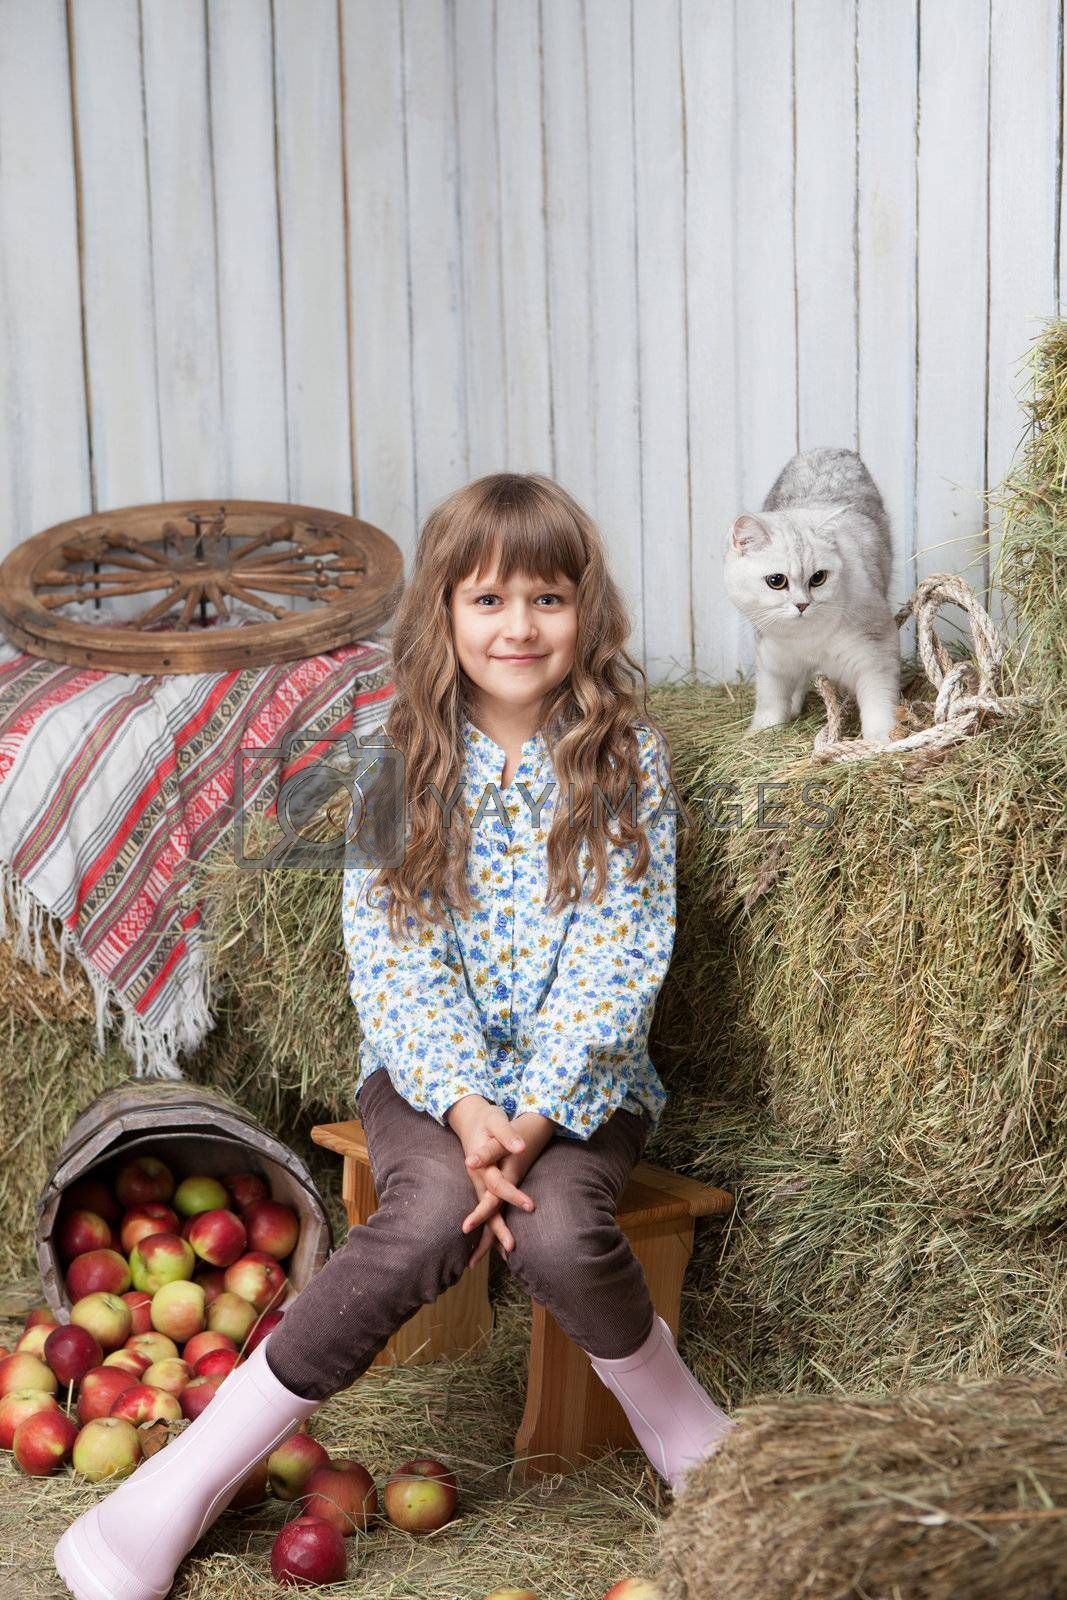 Portrait of sincere little blond girl villager sitting near pail with apples and white cat on hay stack in wooden hayloft